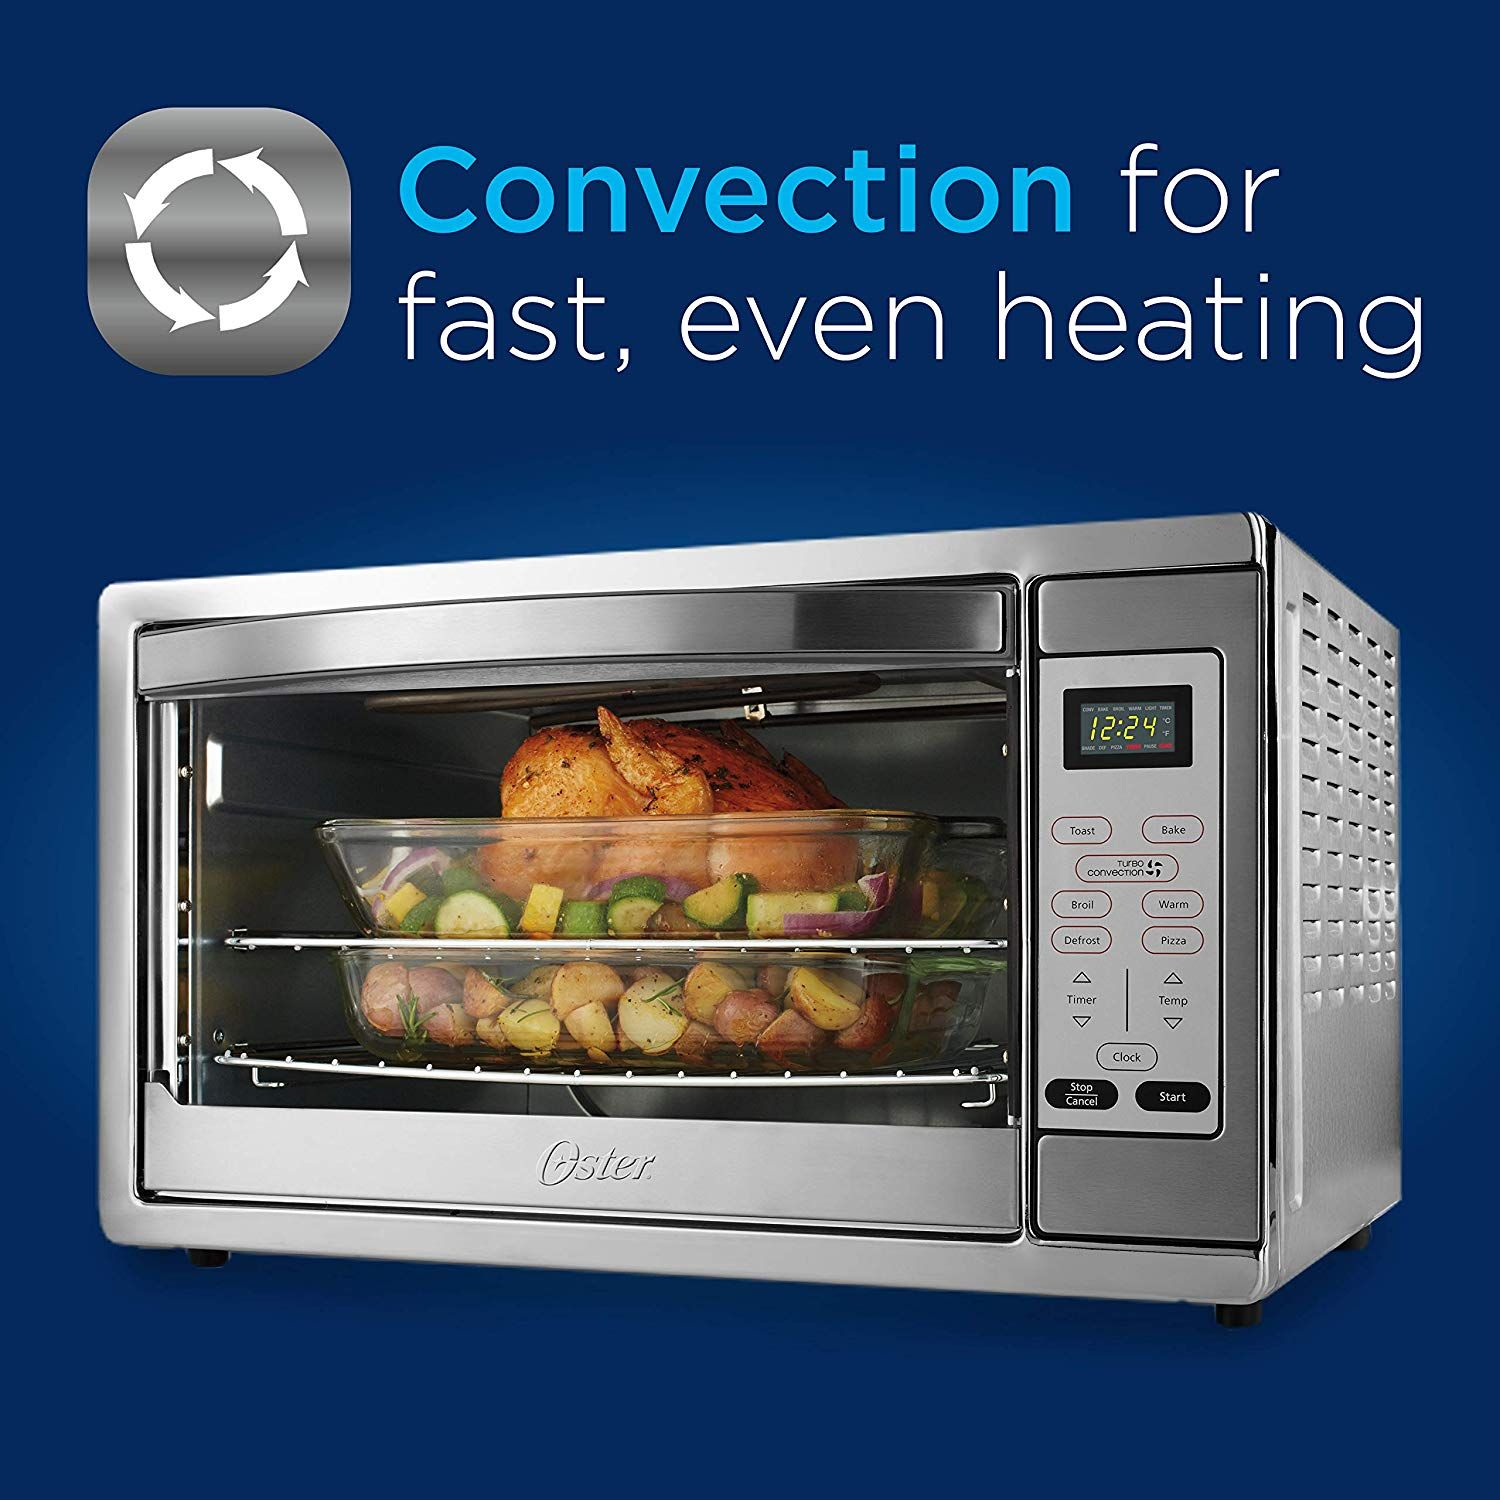 Countertop Convection Oven Features Convection Technology For